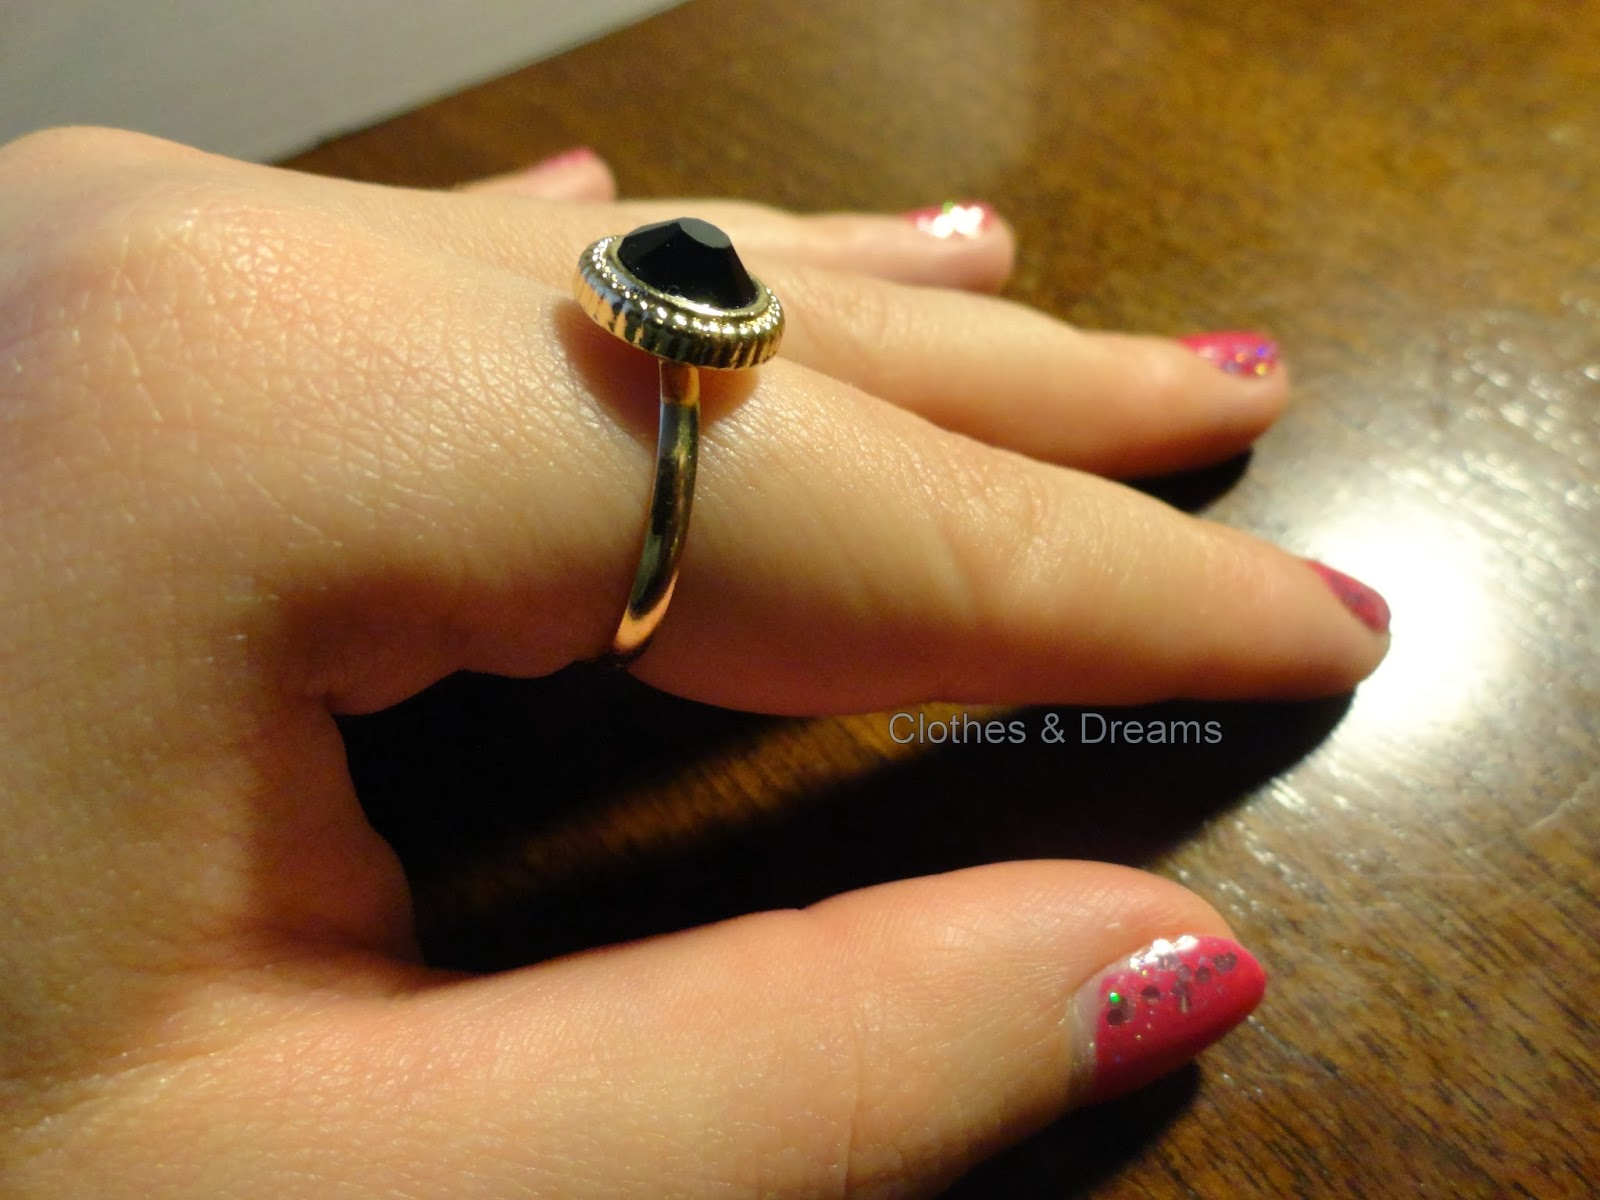 Clothes & Dreams: Self-rewarding feels so good! New ring H&M